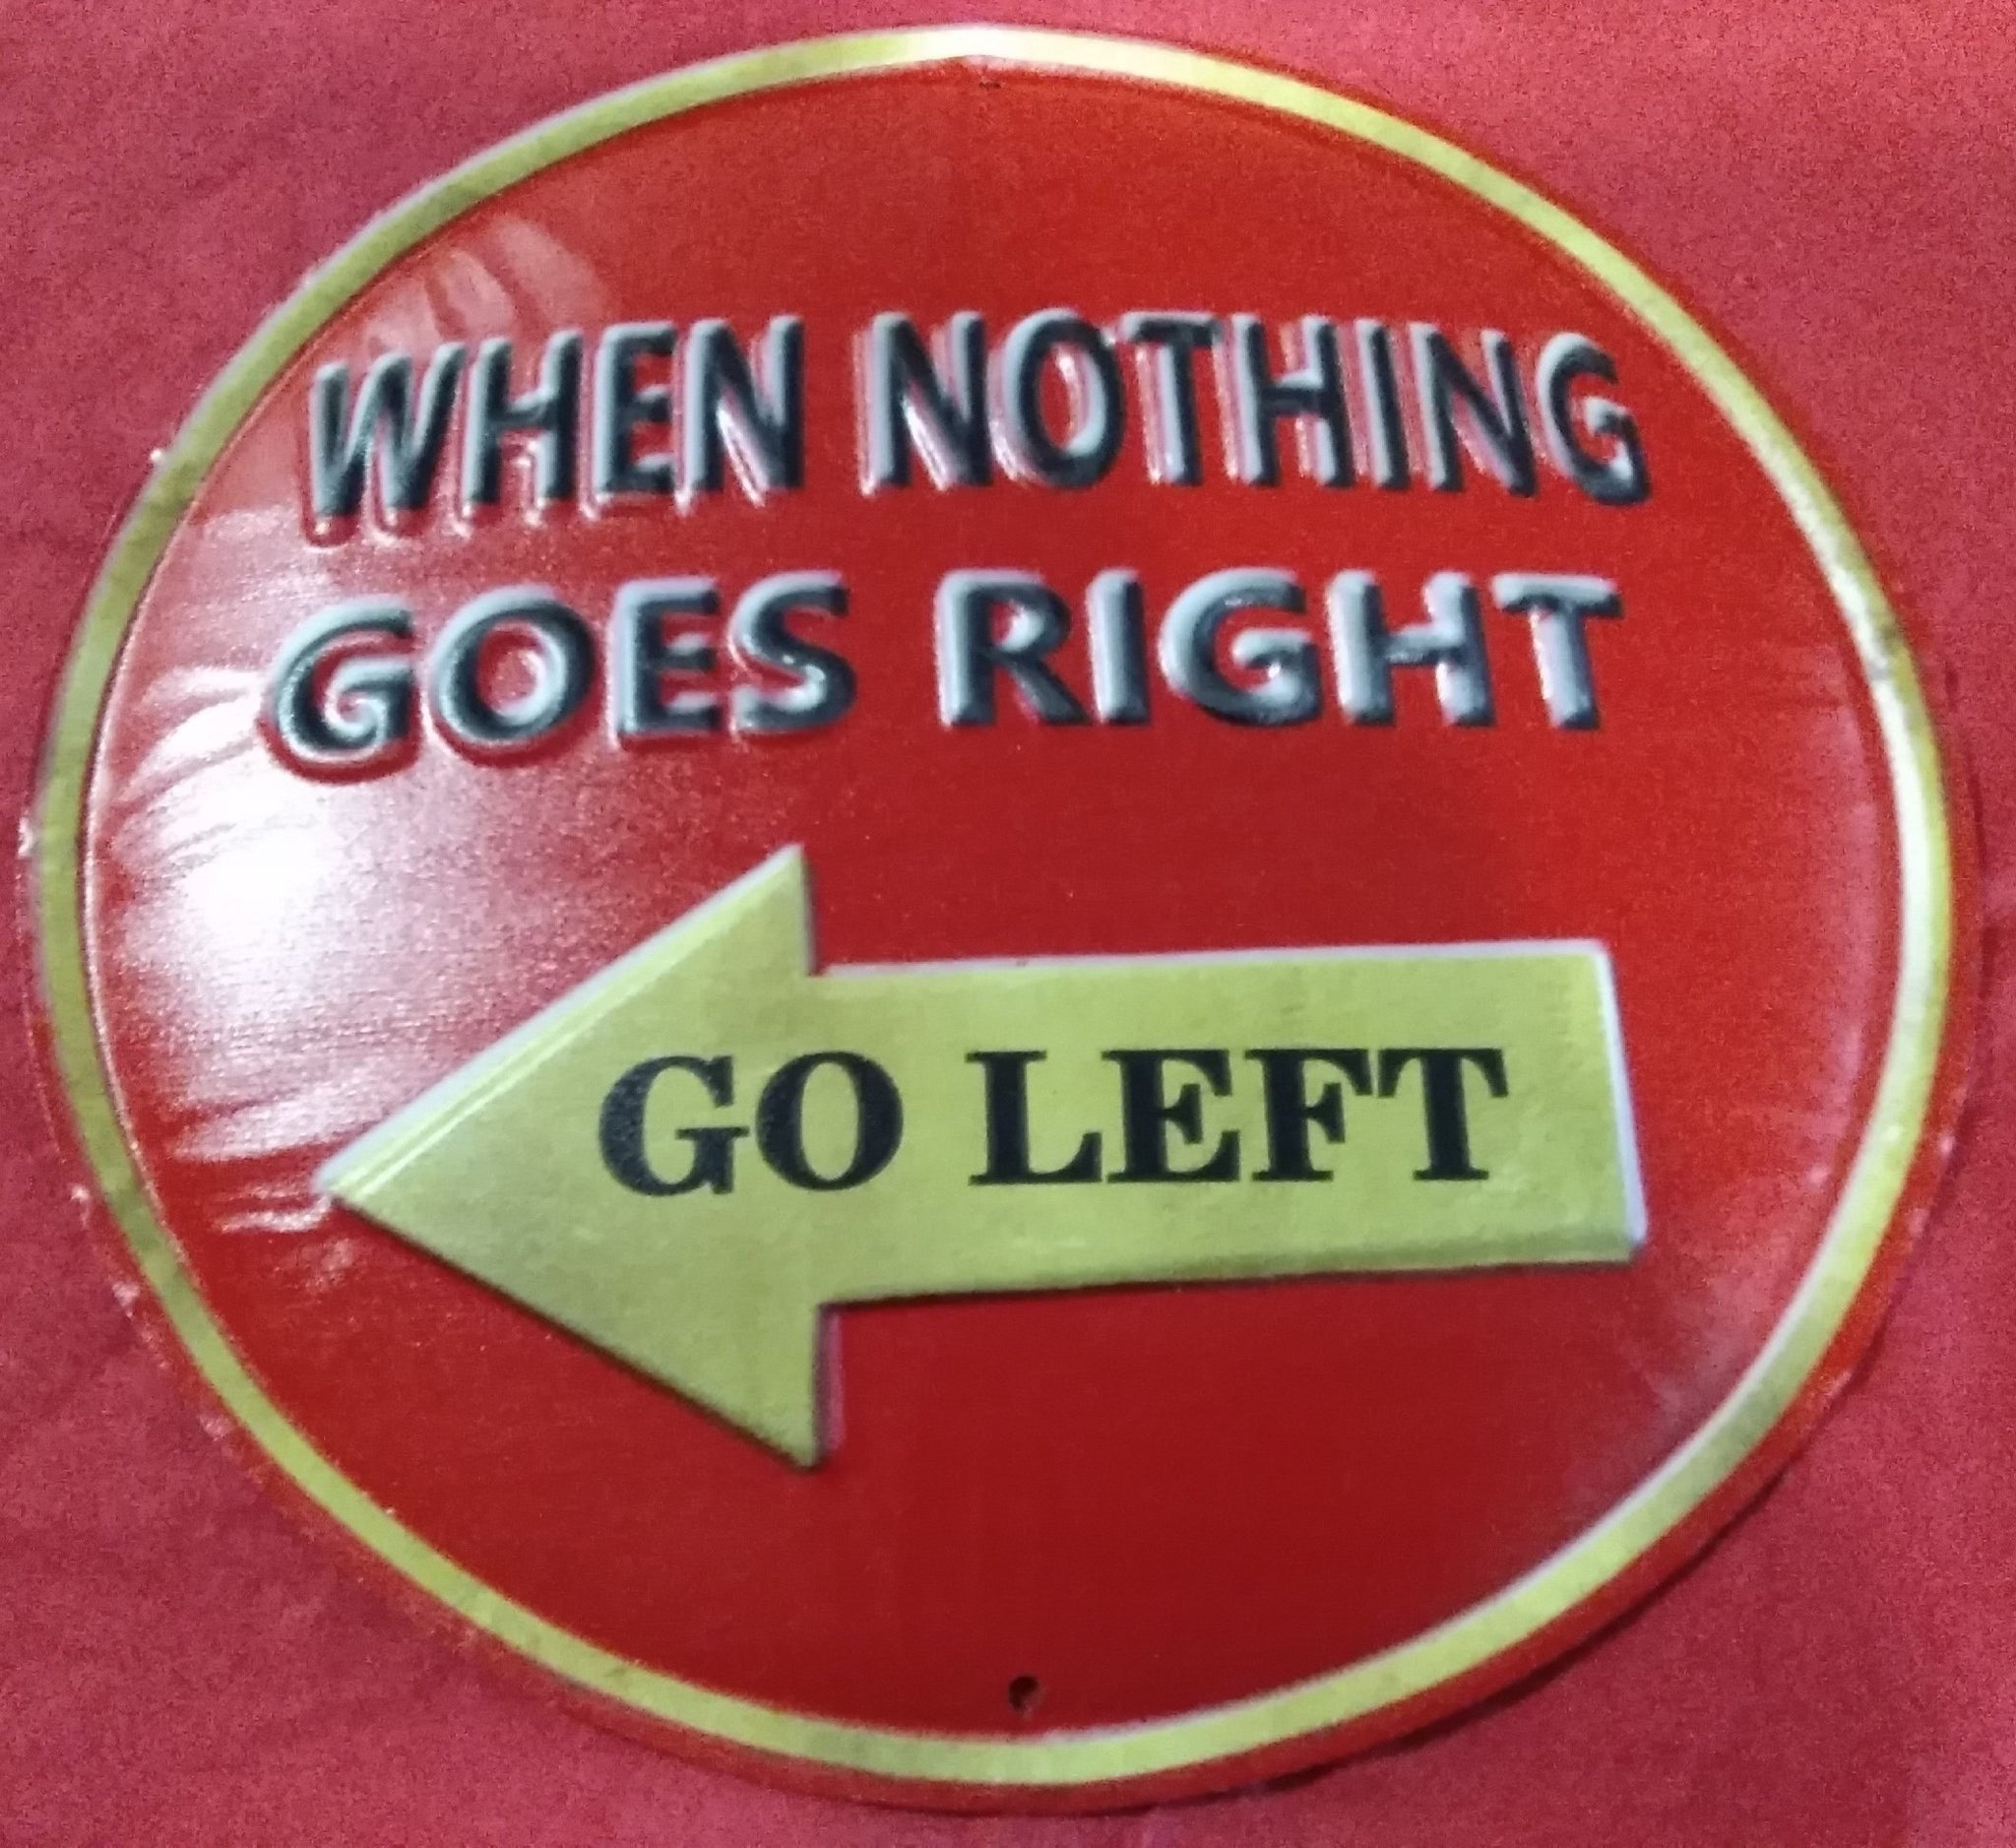 When Nothing goes Right, go Left | Sign